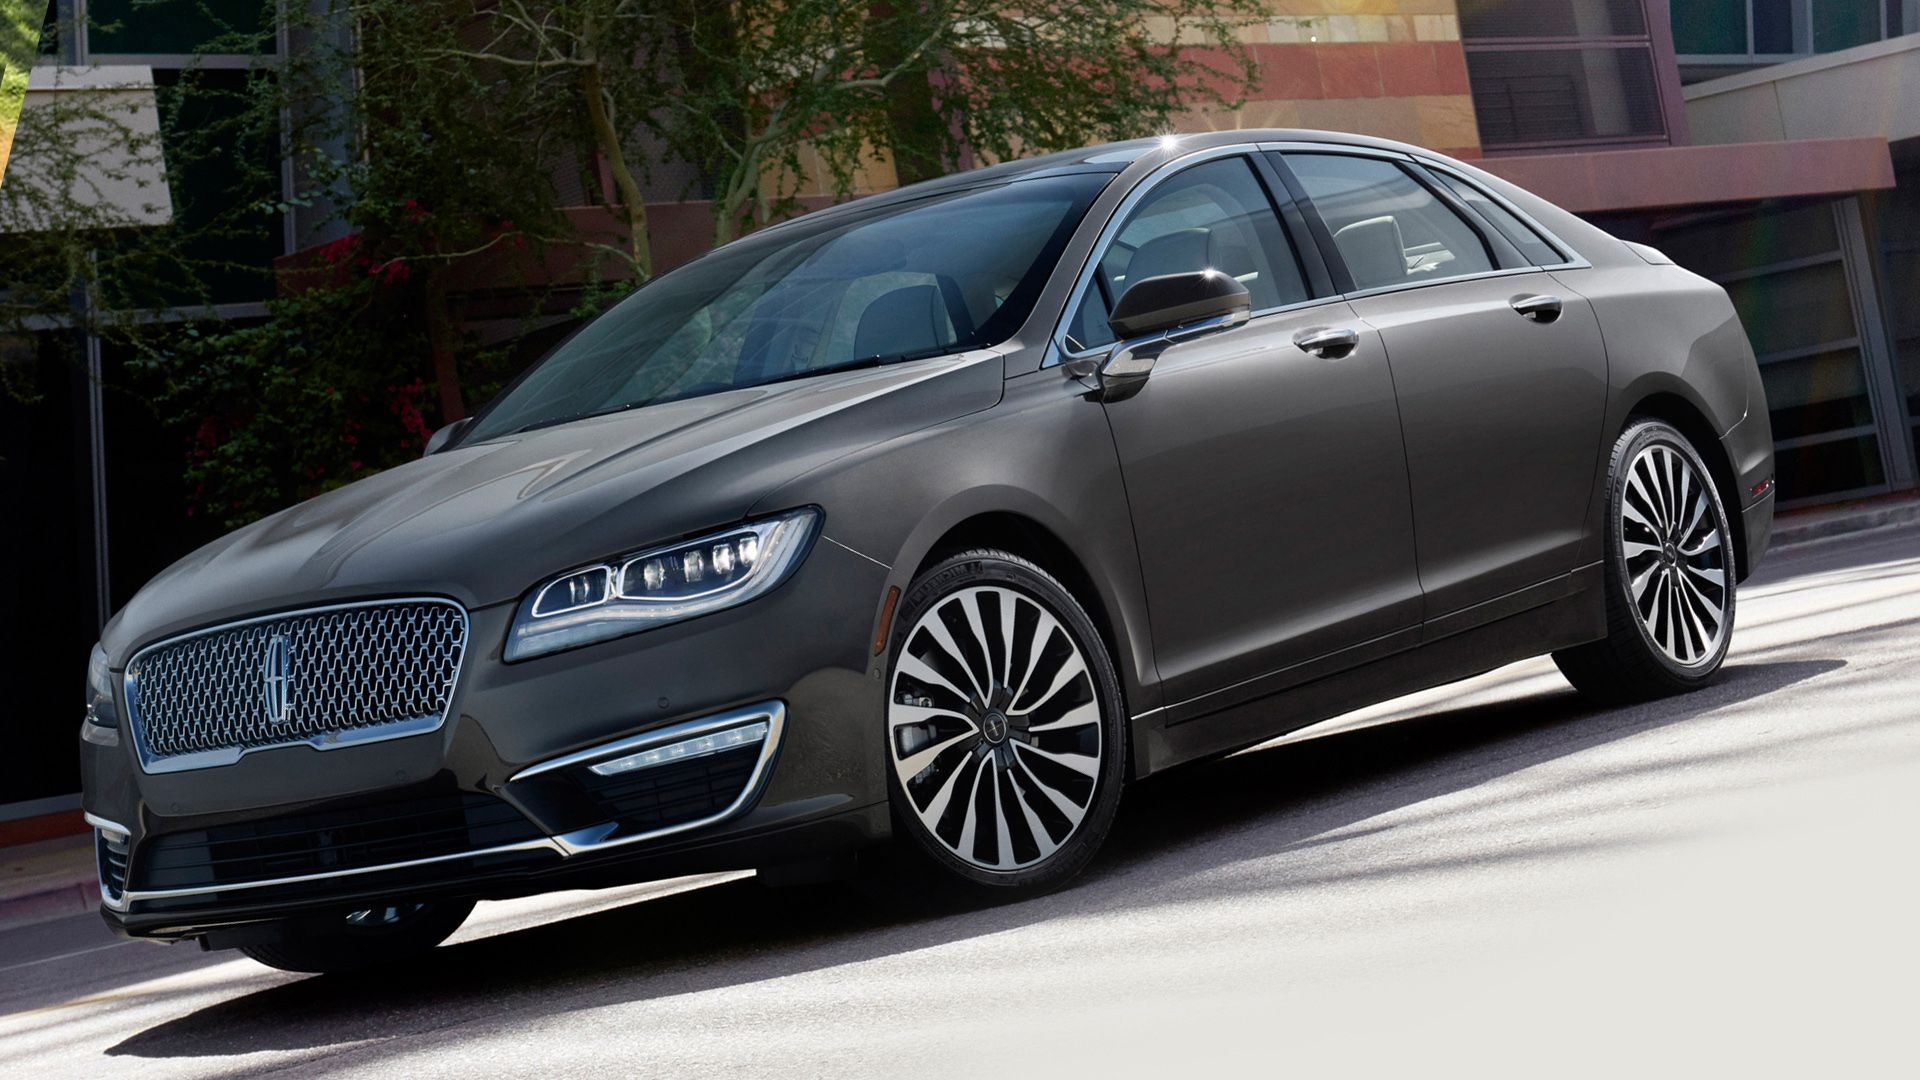 New 2018 Lincoln MKZ Release Date